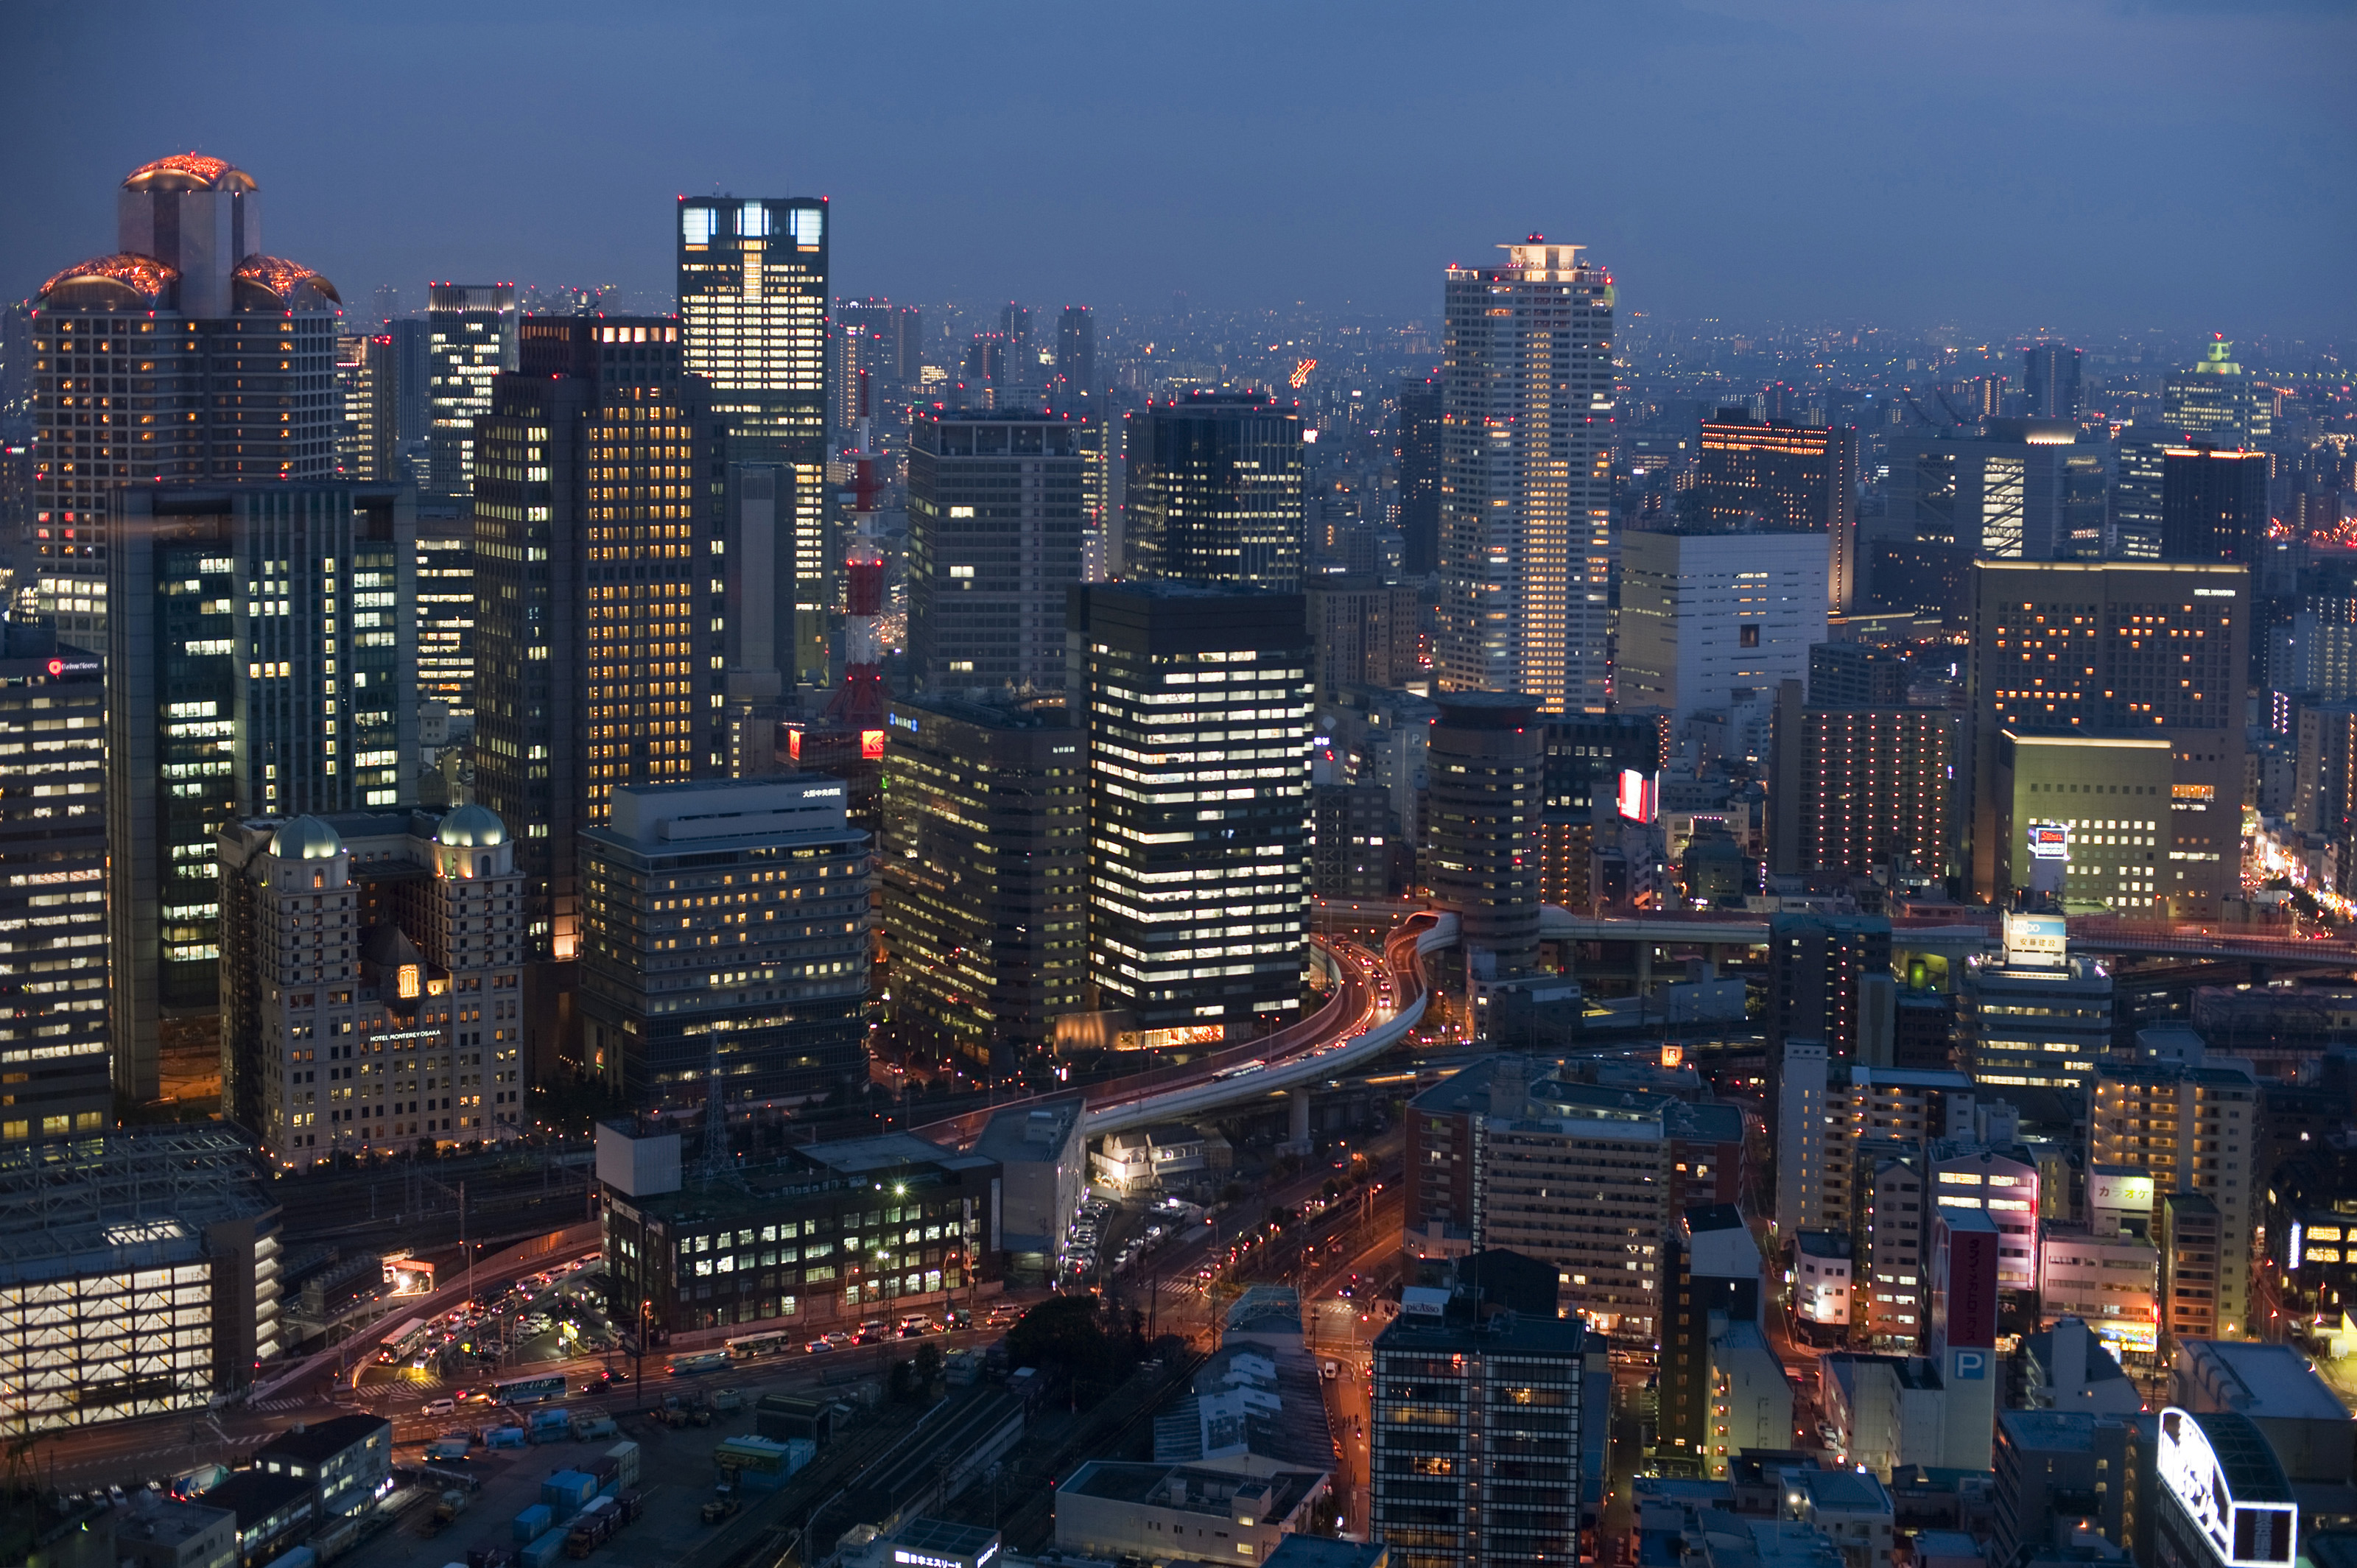 Osaka Cityscape At Night With Skyscrapers Image Free